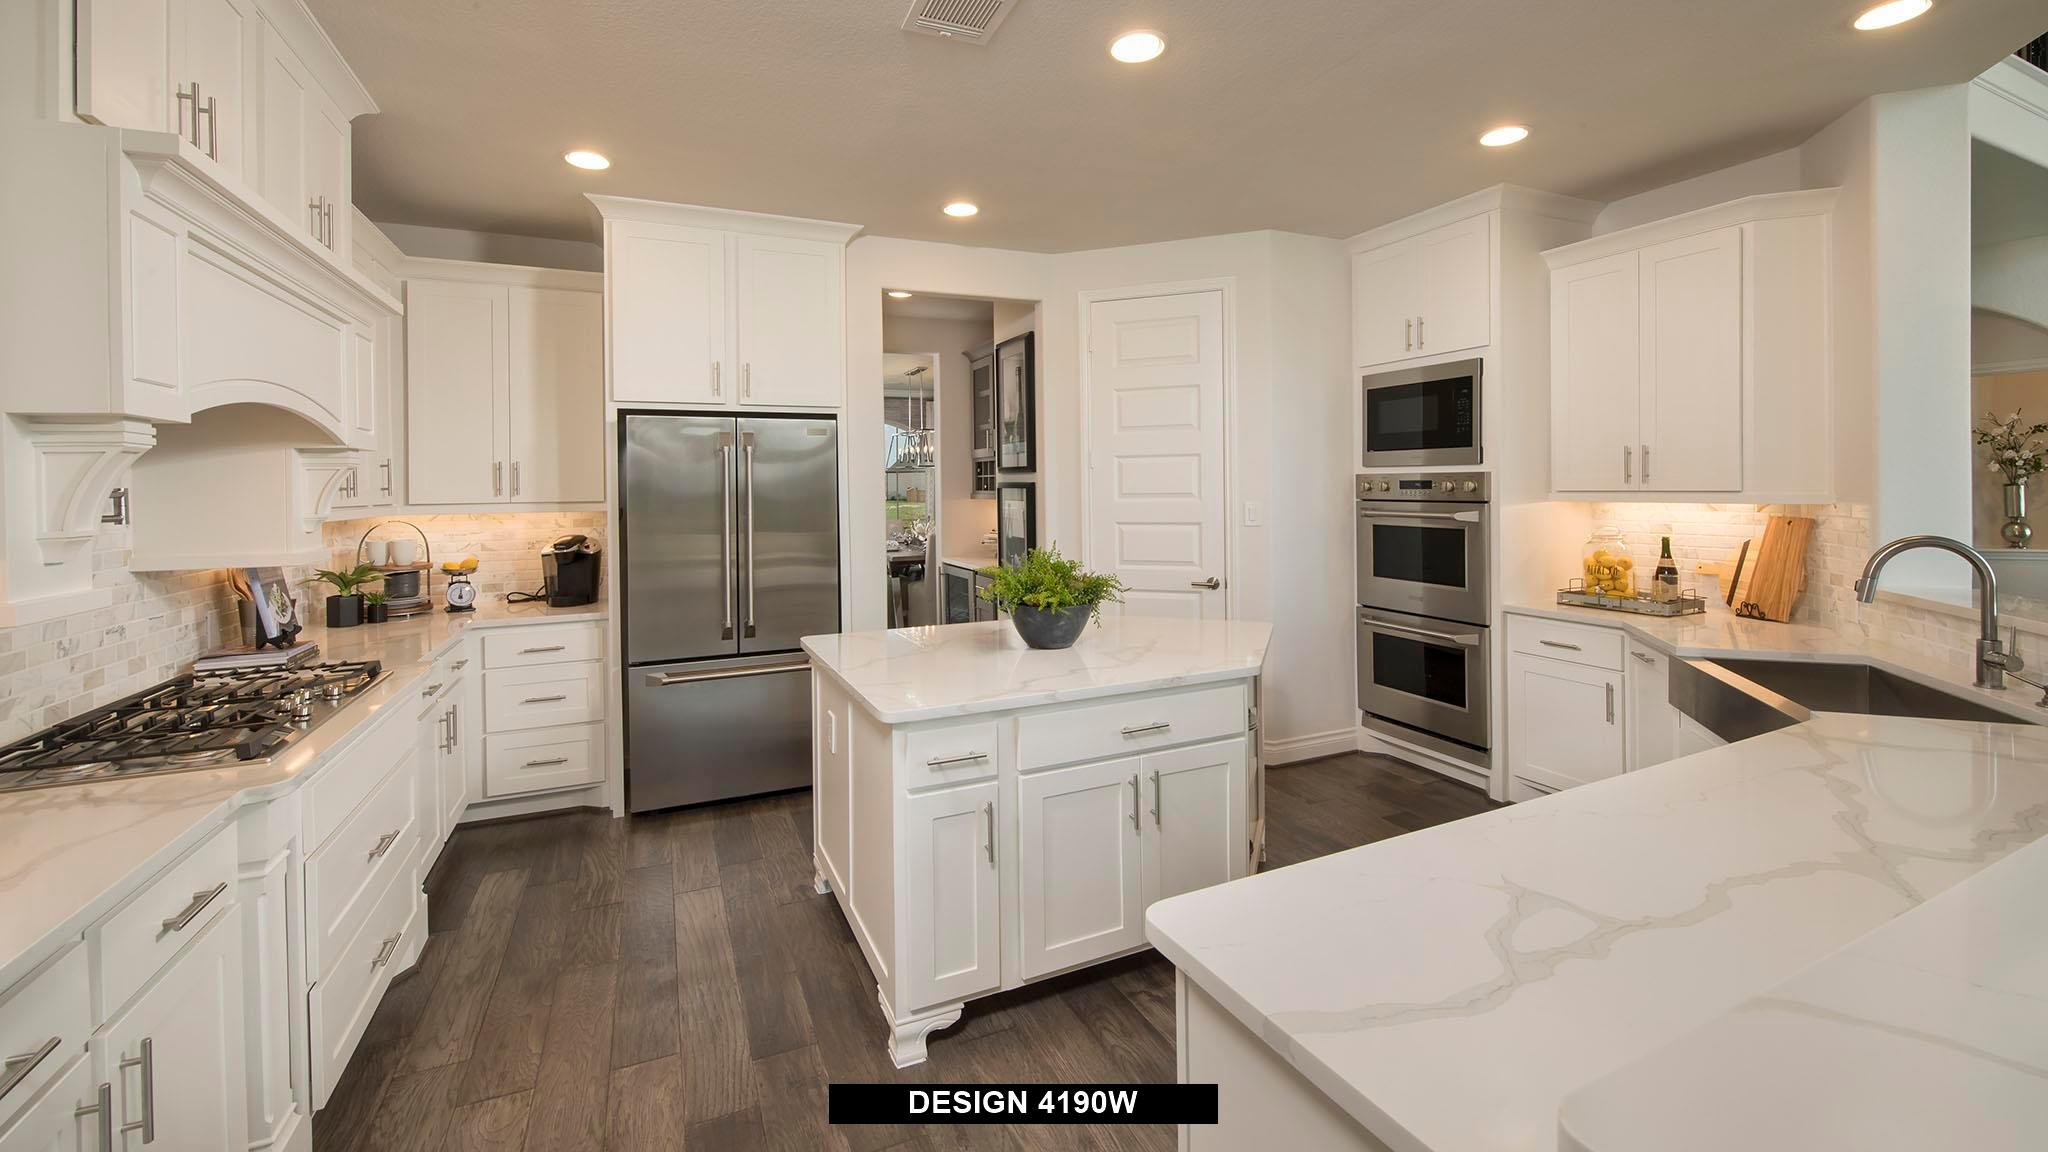 Kitchen featured in the 4190W By Perry Homes in Dallas, TX